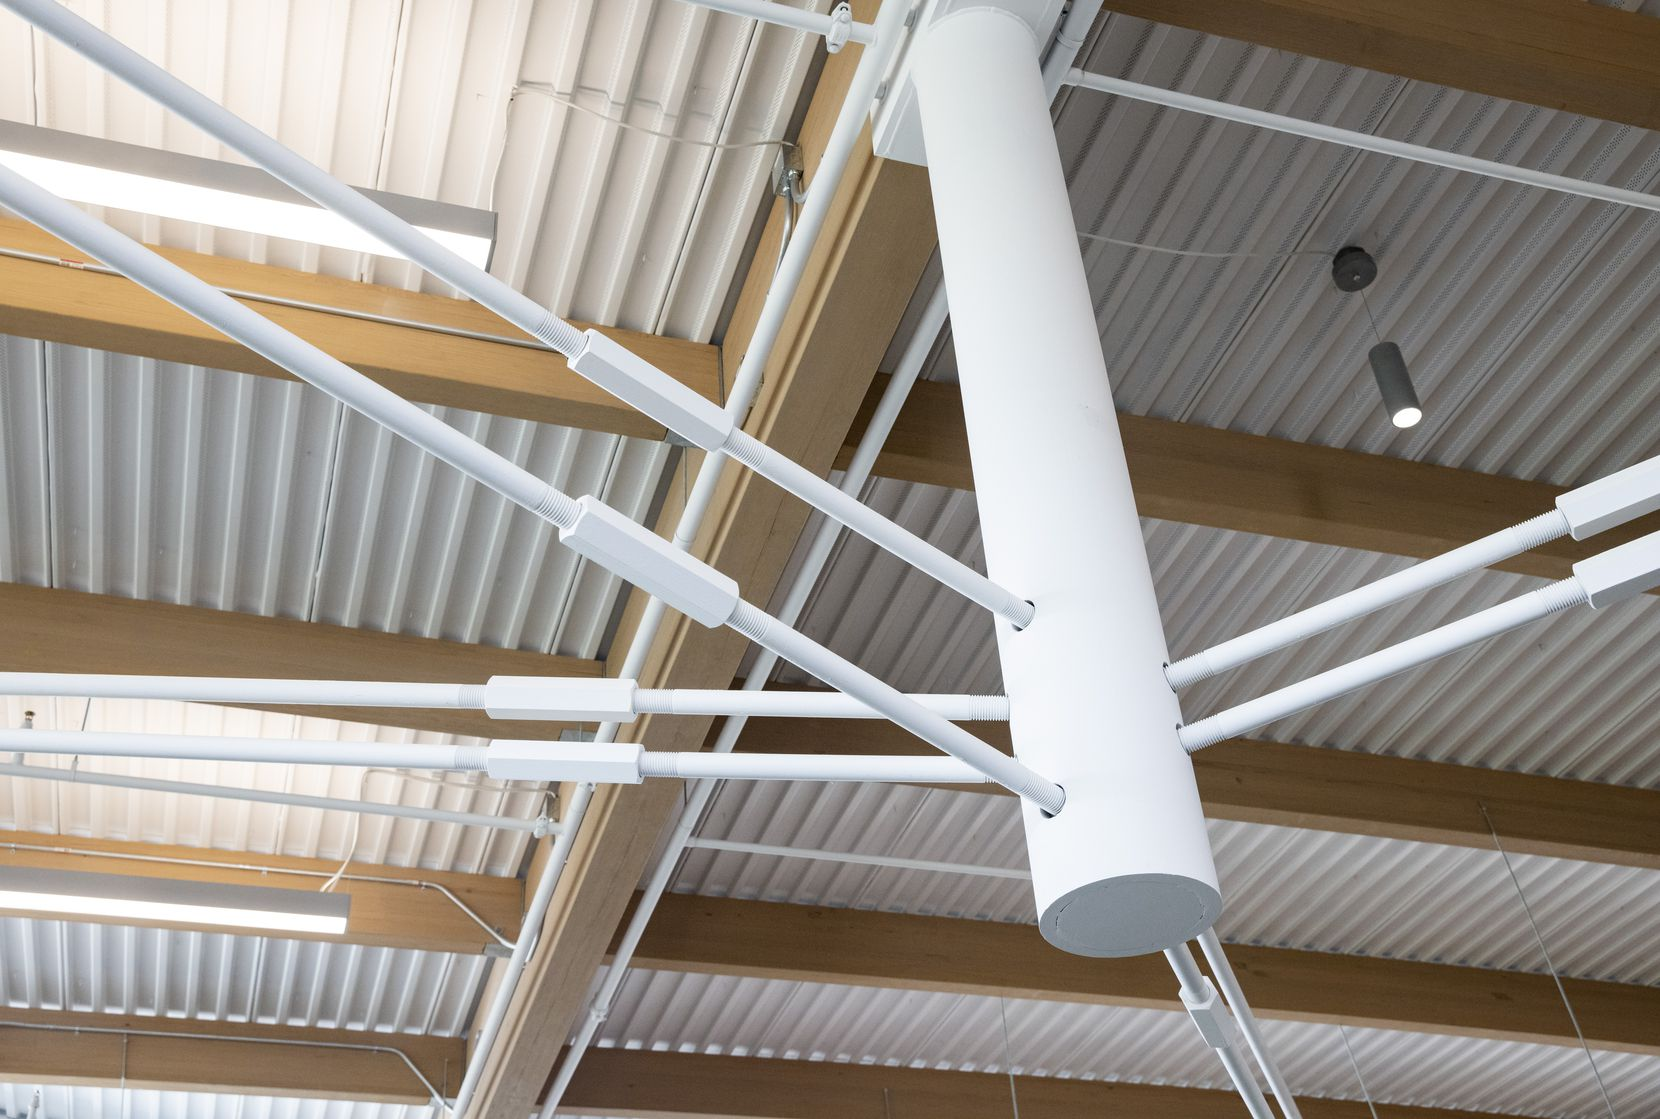 The most spectacular feature of the library is the exposed steel traction system with cables that meet at the suspended posts.